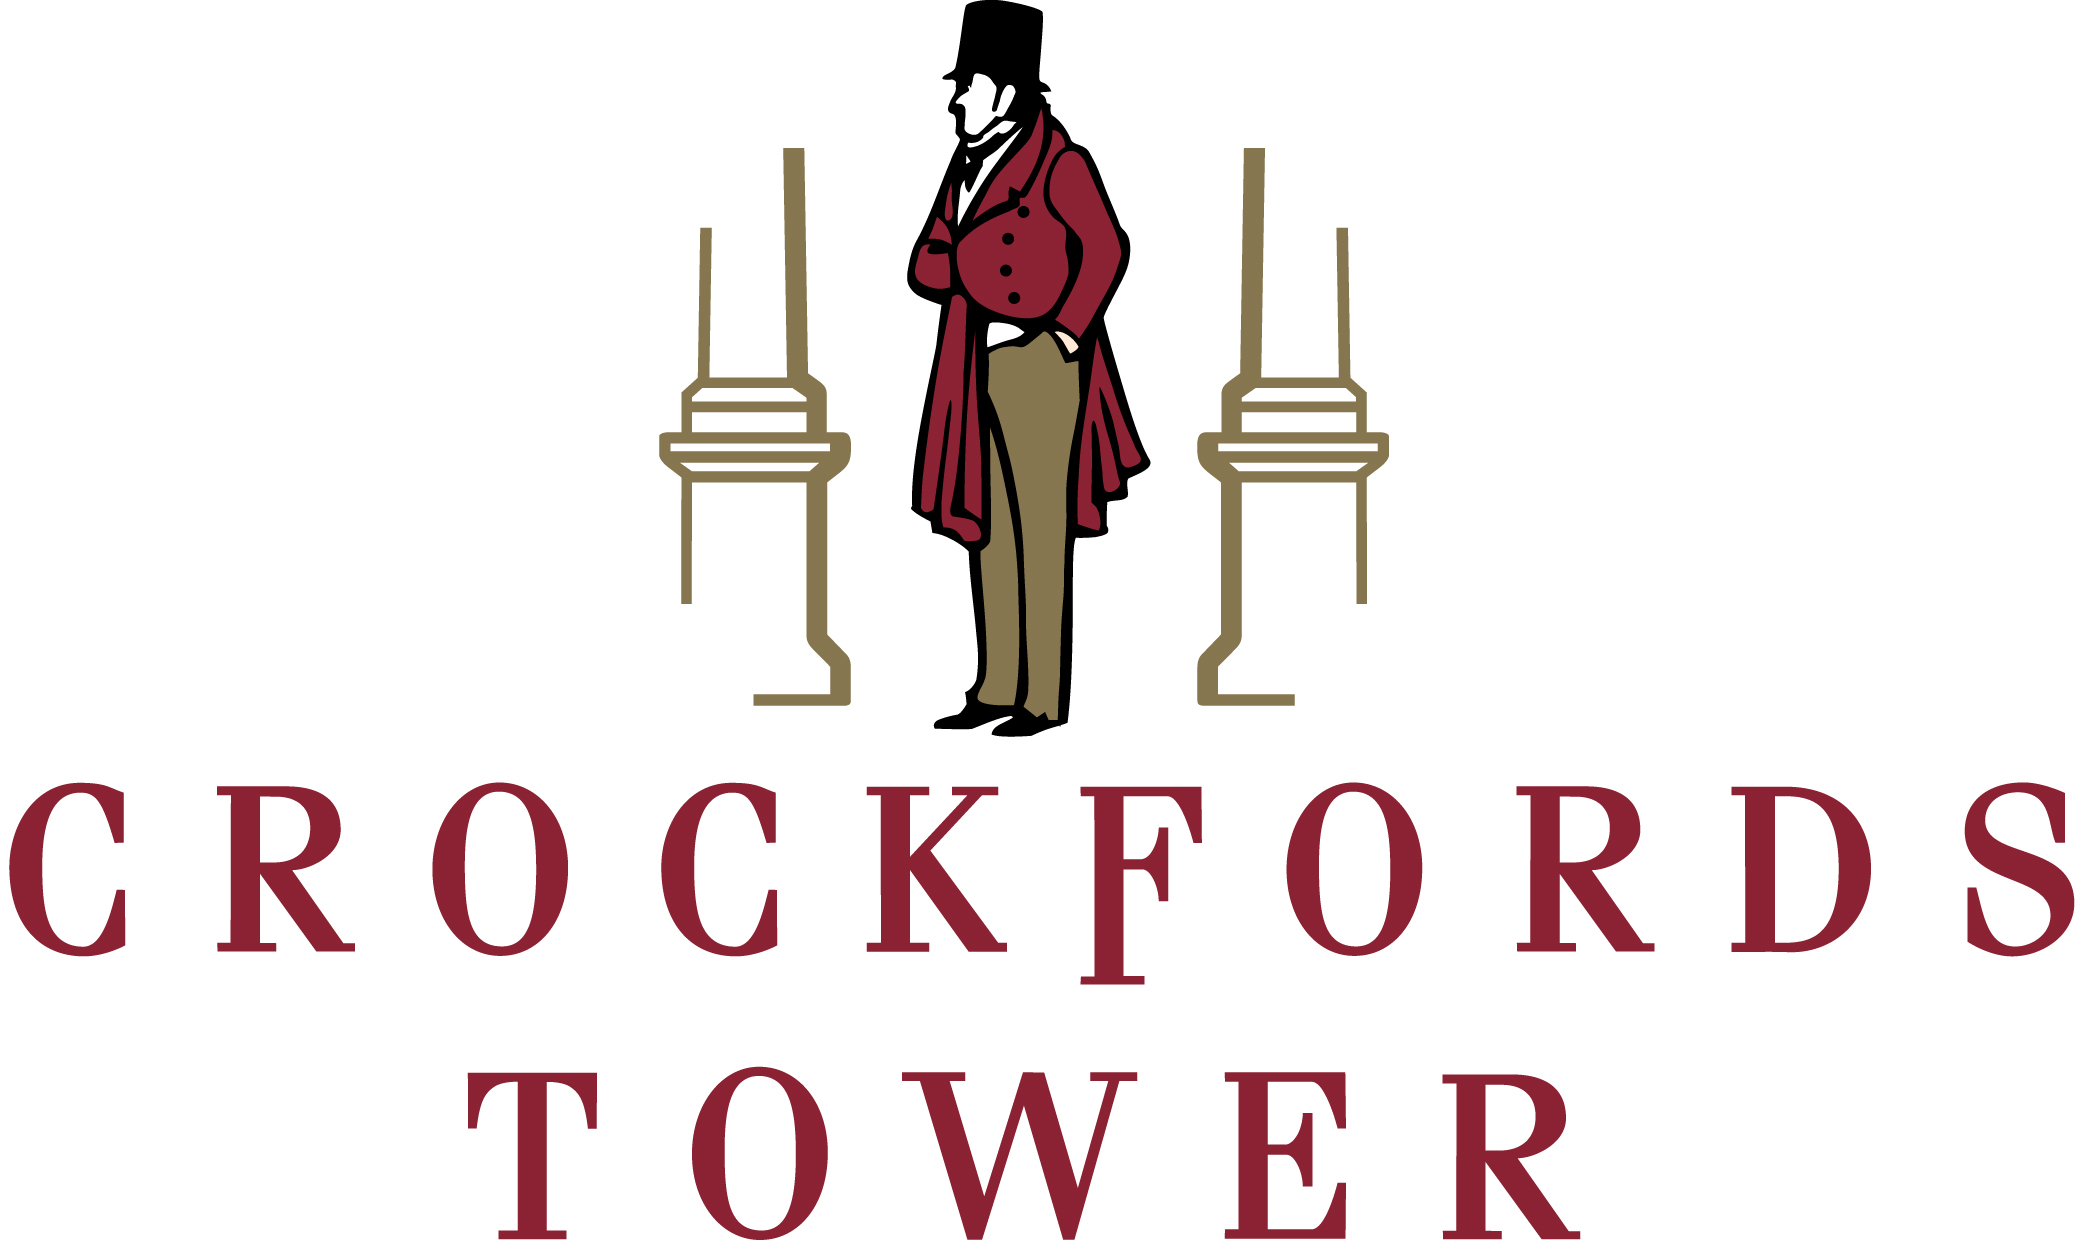 Crockfords Tower